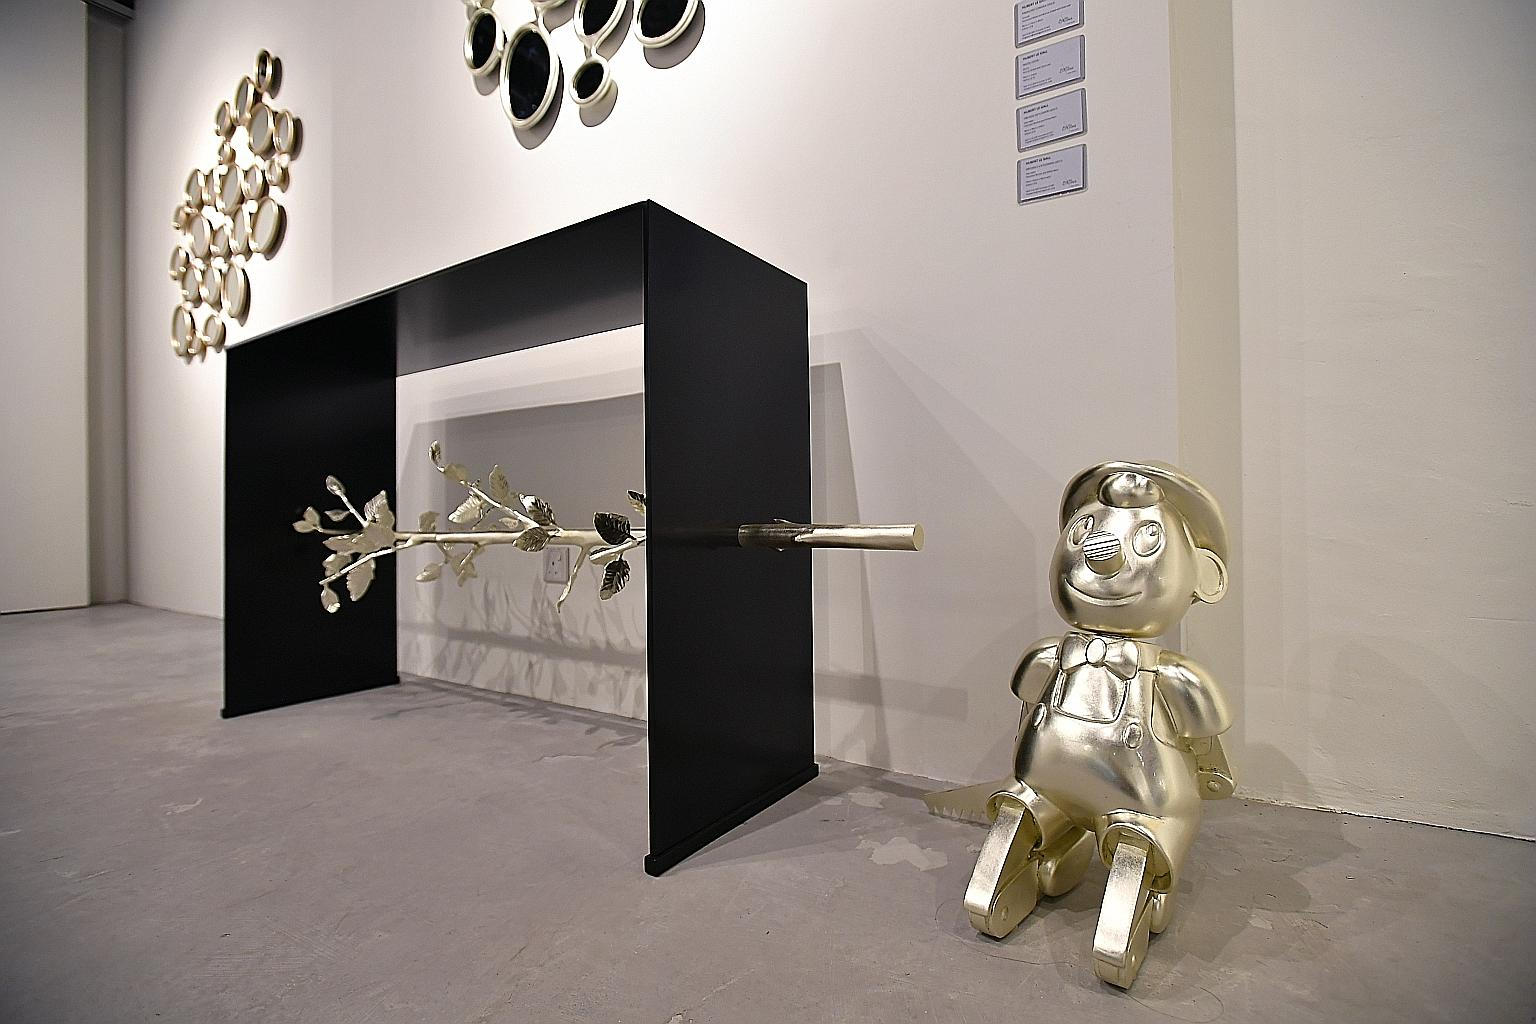 The Best of Collectible Design: Hubert Le Gall - Pinocchio Console hubert le gall The Best of Collectible Design: Hubert Le Gall Hubert Le Gall Pinocchio Console